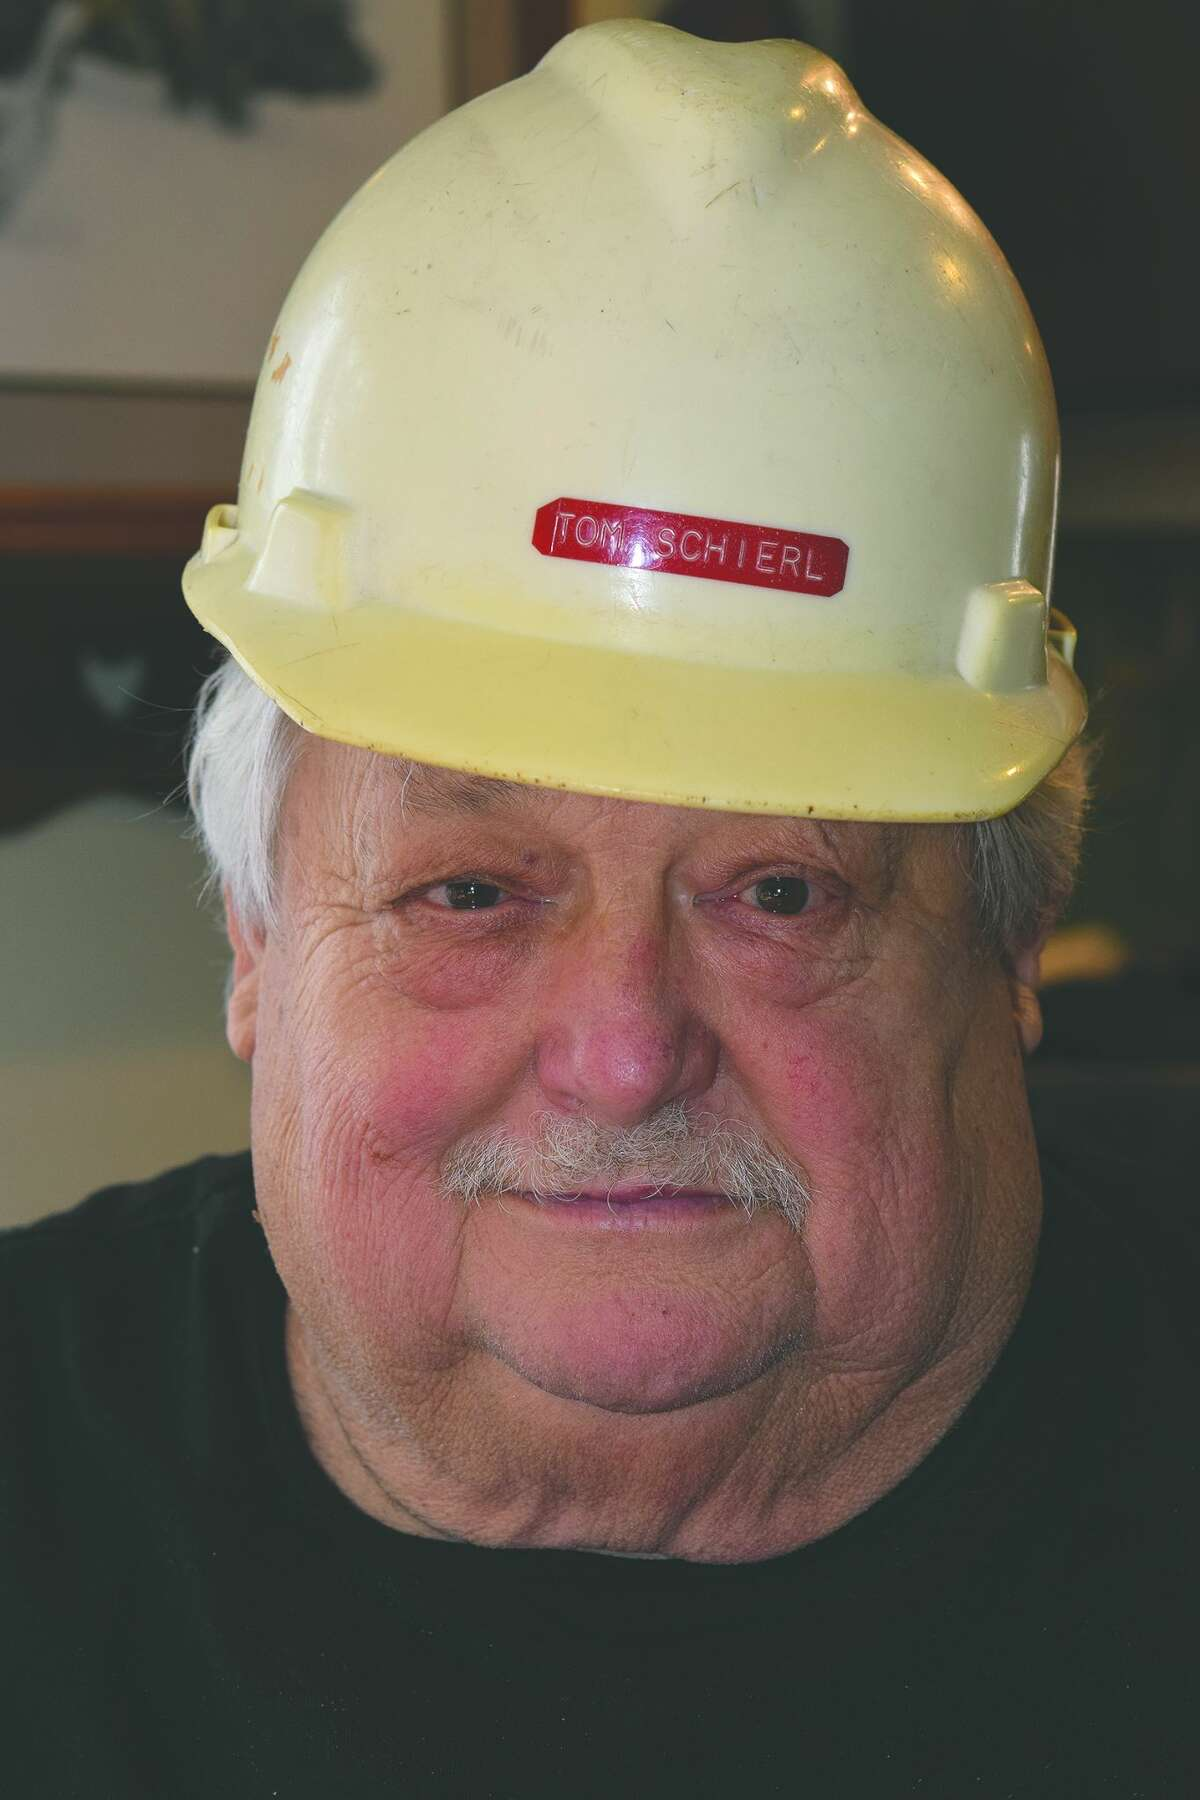 Tom Schierl and the hardhat he wore as engineering manager at the Carnation/Nestle plant.